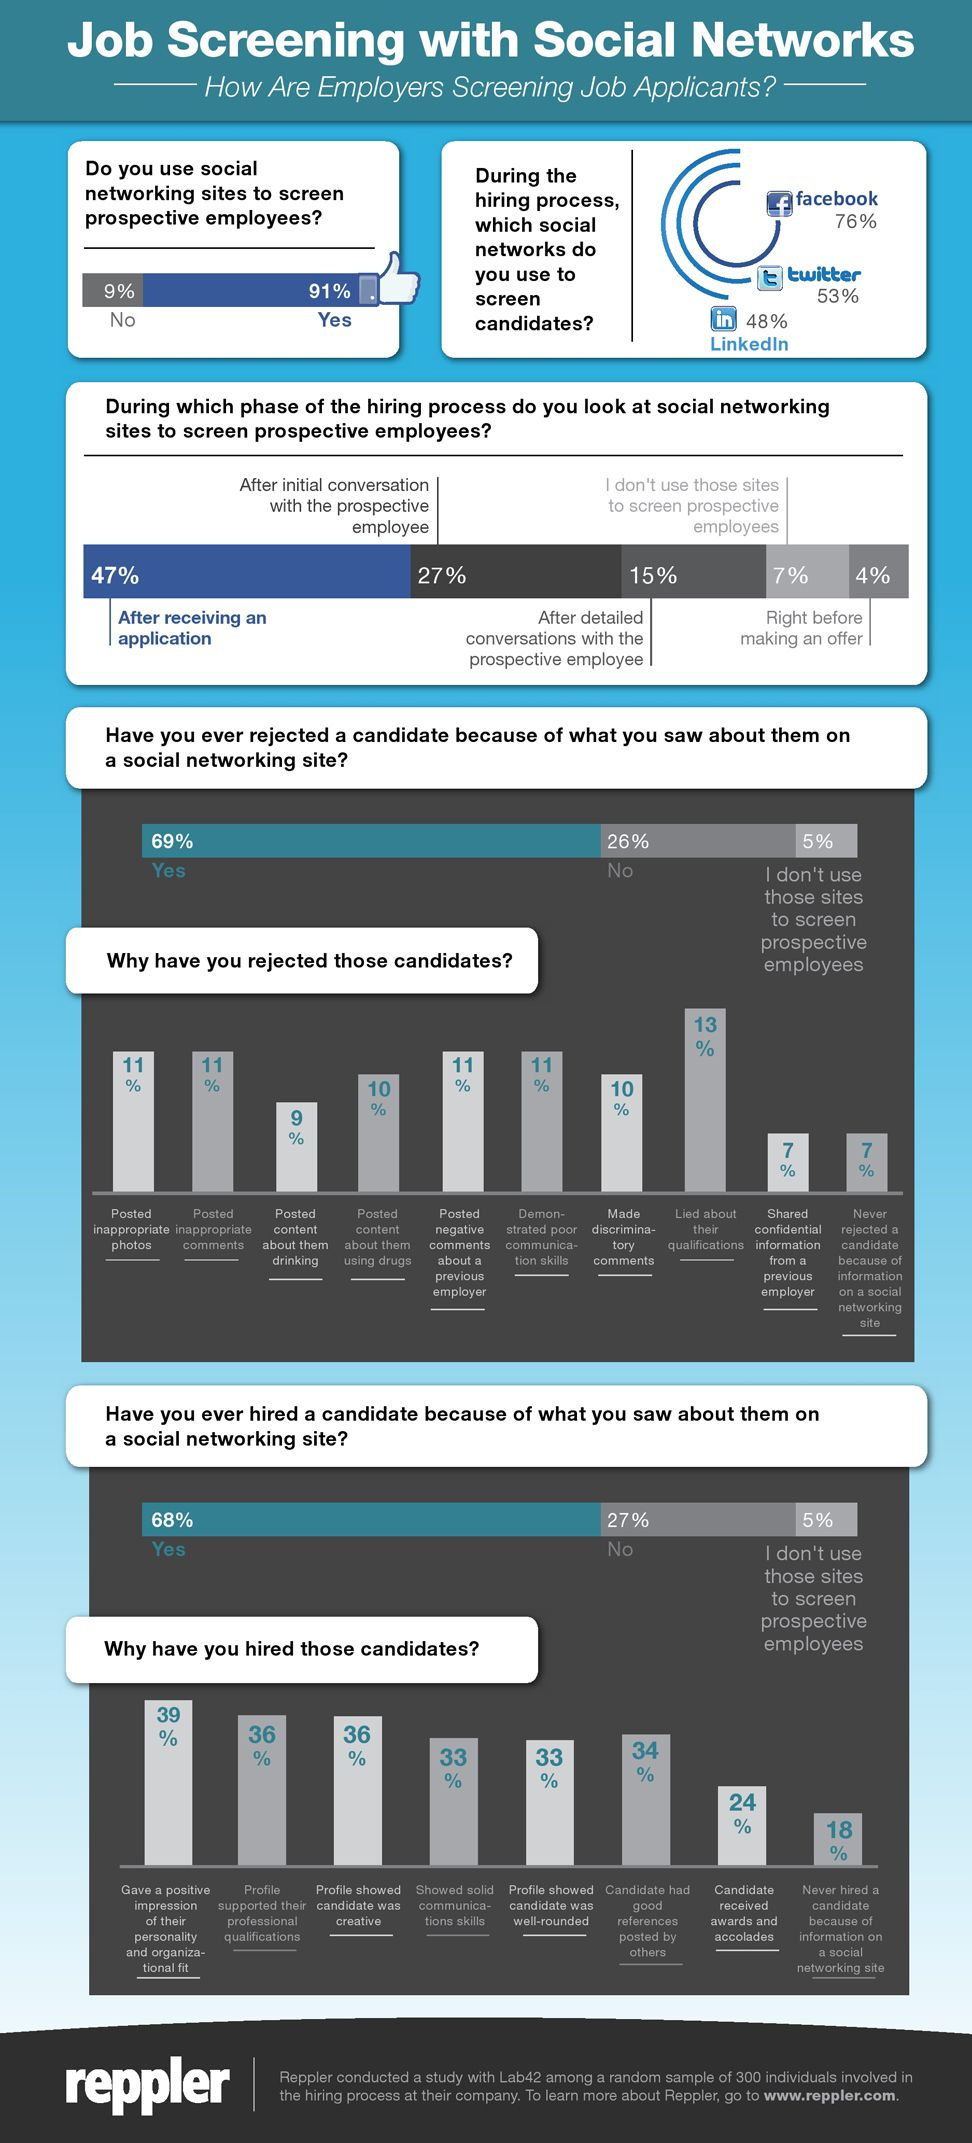 How employers use social networks to screen job applicants.    Facebook, Twitter, LinkedIn